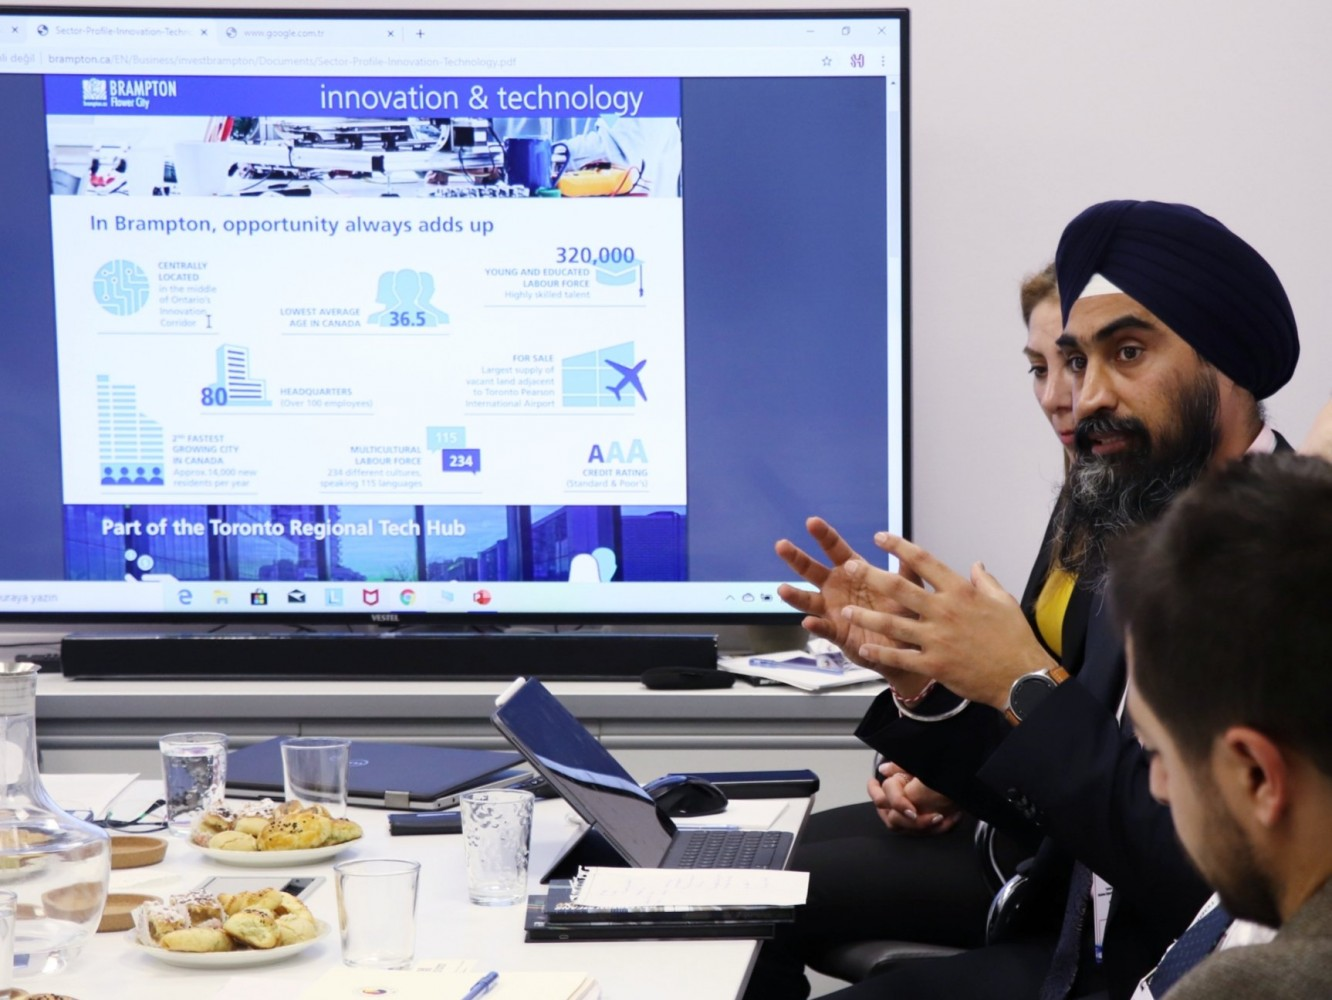 Brampton bets on FDI to set itself apart and attract new business